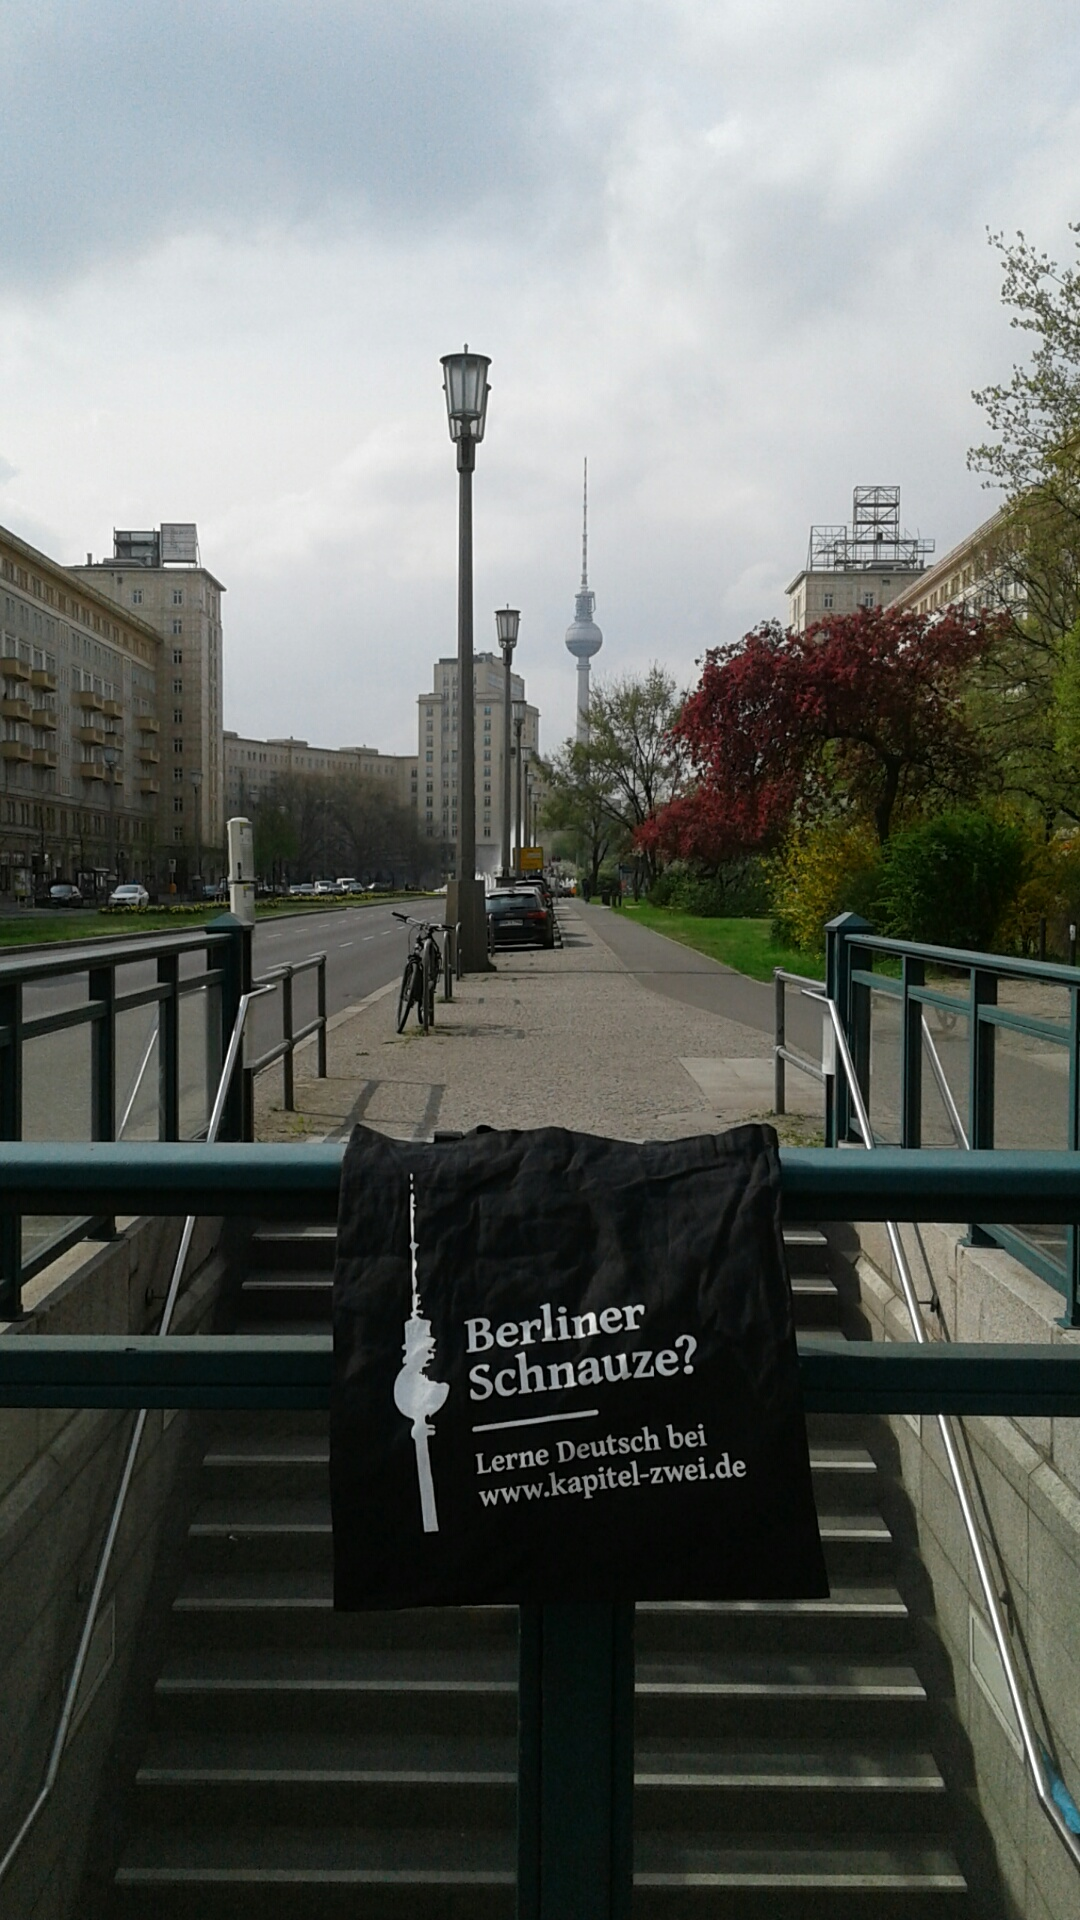 Notes from the East Berlin: Karl Marx Allee